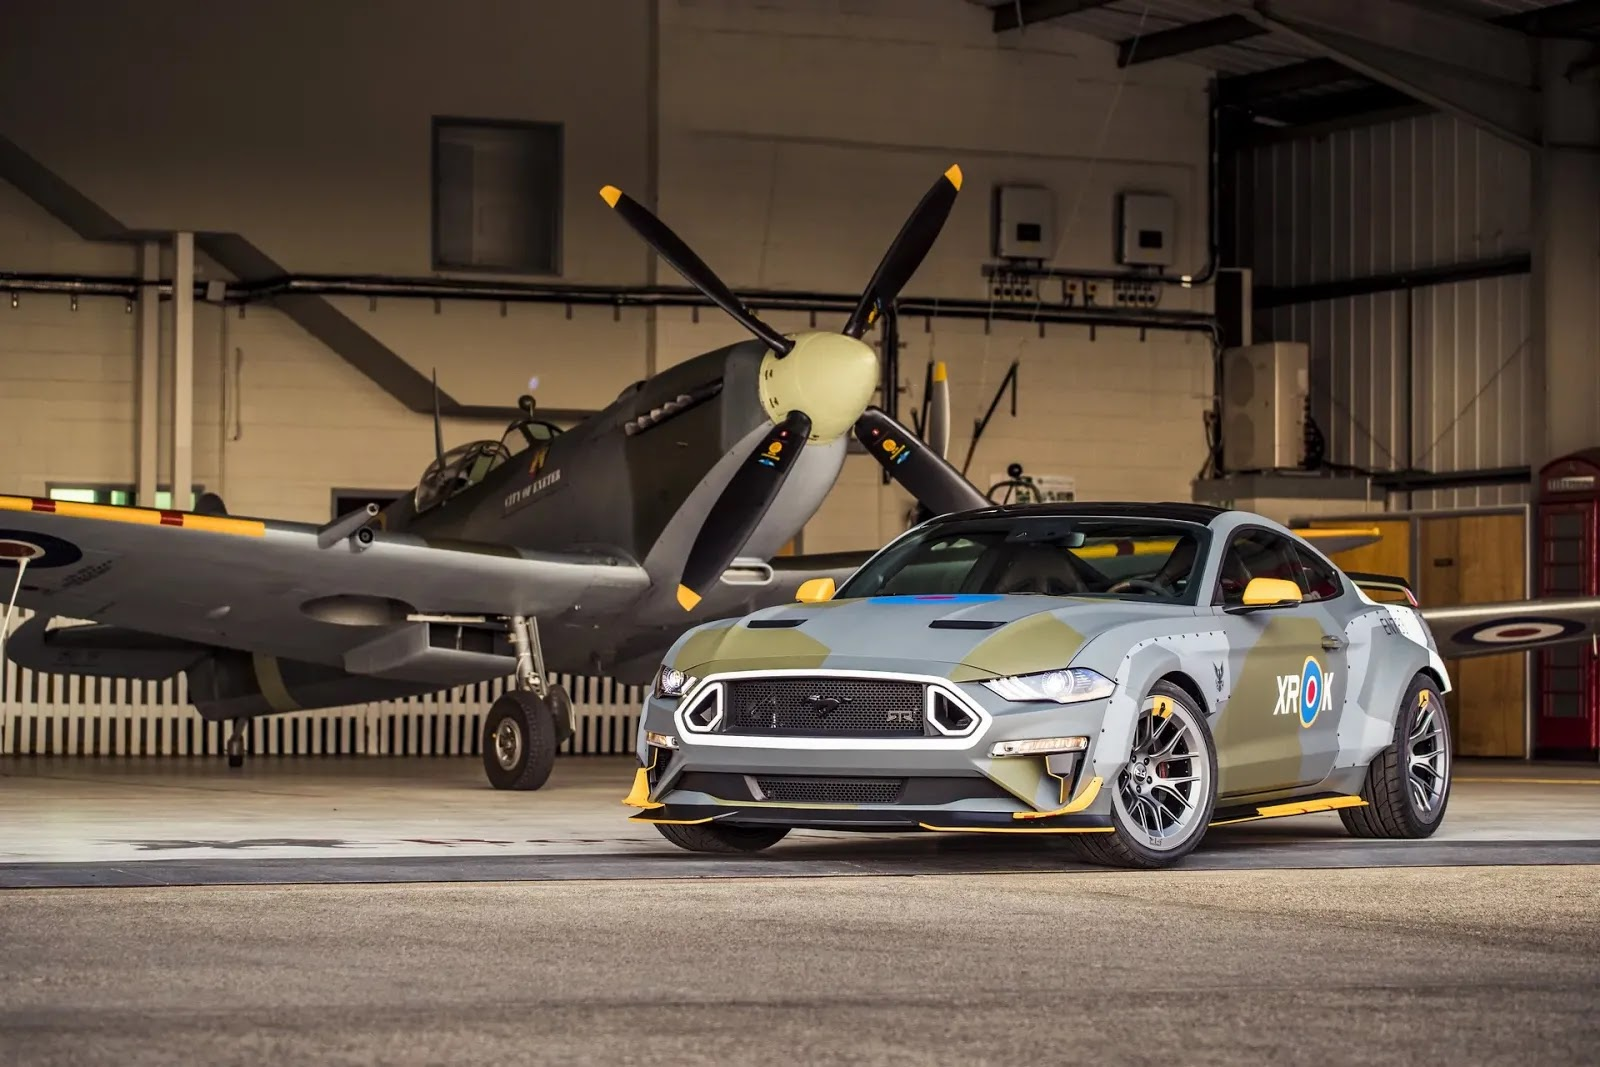 700 Hp Ford Eagle Squadron Mustang Gt Debuts At Goodwood